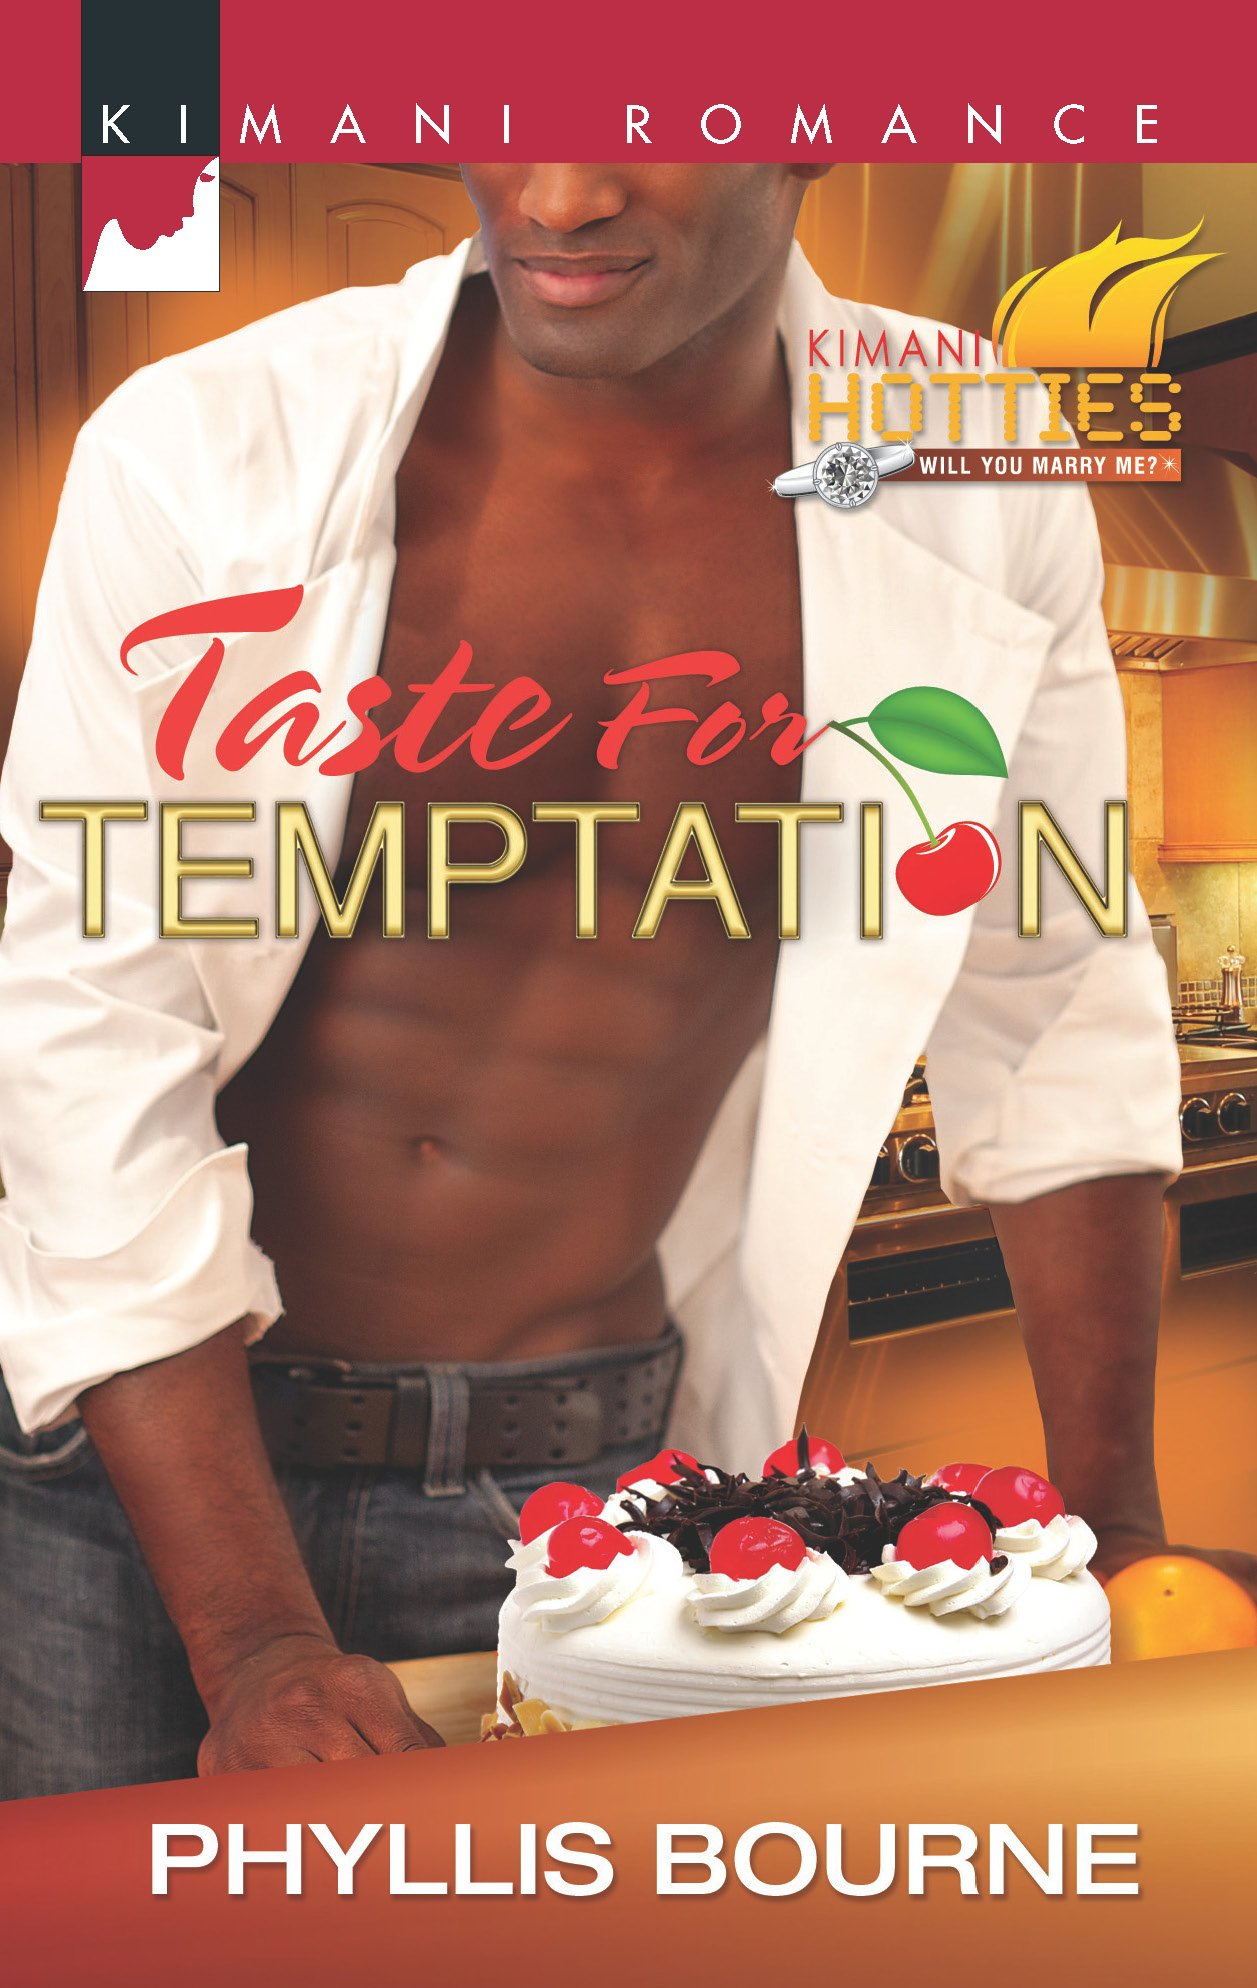 Buy Taste for Temptation (Kimani Romance) Book Online at Low Prices in  India | Taste for Temptation (Kimani Romance) Reviews & Ratings - Amazon.in